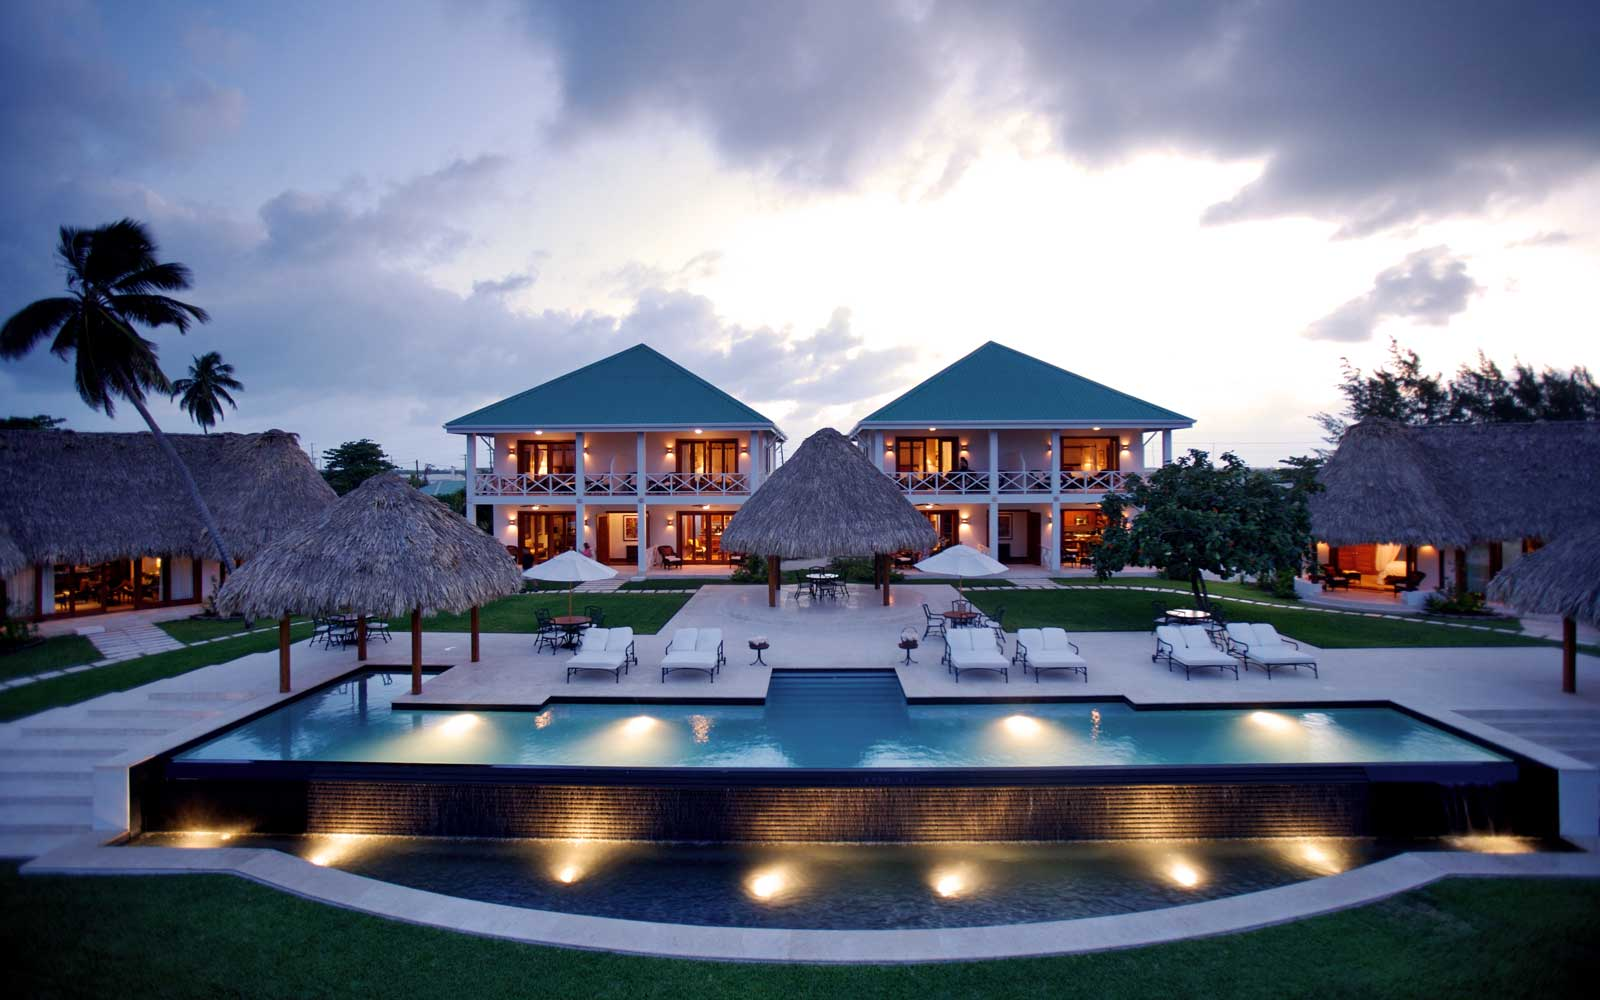 Top All-Inclusive Belize Resorts | Travel + Leisure | Travel ... on nepal house plans, switzerland house plans, norway house plans, argentine house plans, malta house plans, sri lanka house plans, korea house plans, egypt house plans, libya house plans, new jersey house plans, guam house plans, saudi arabia house plans, panama house plans, indies house plans, barbados house plans, americas house plans, amish house plans, jamaica house plans, haiti house plans, caribbean house plans,